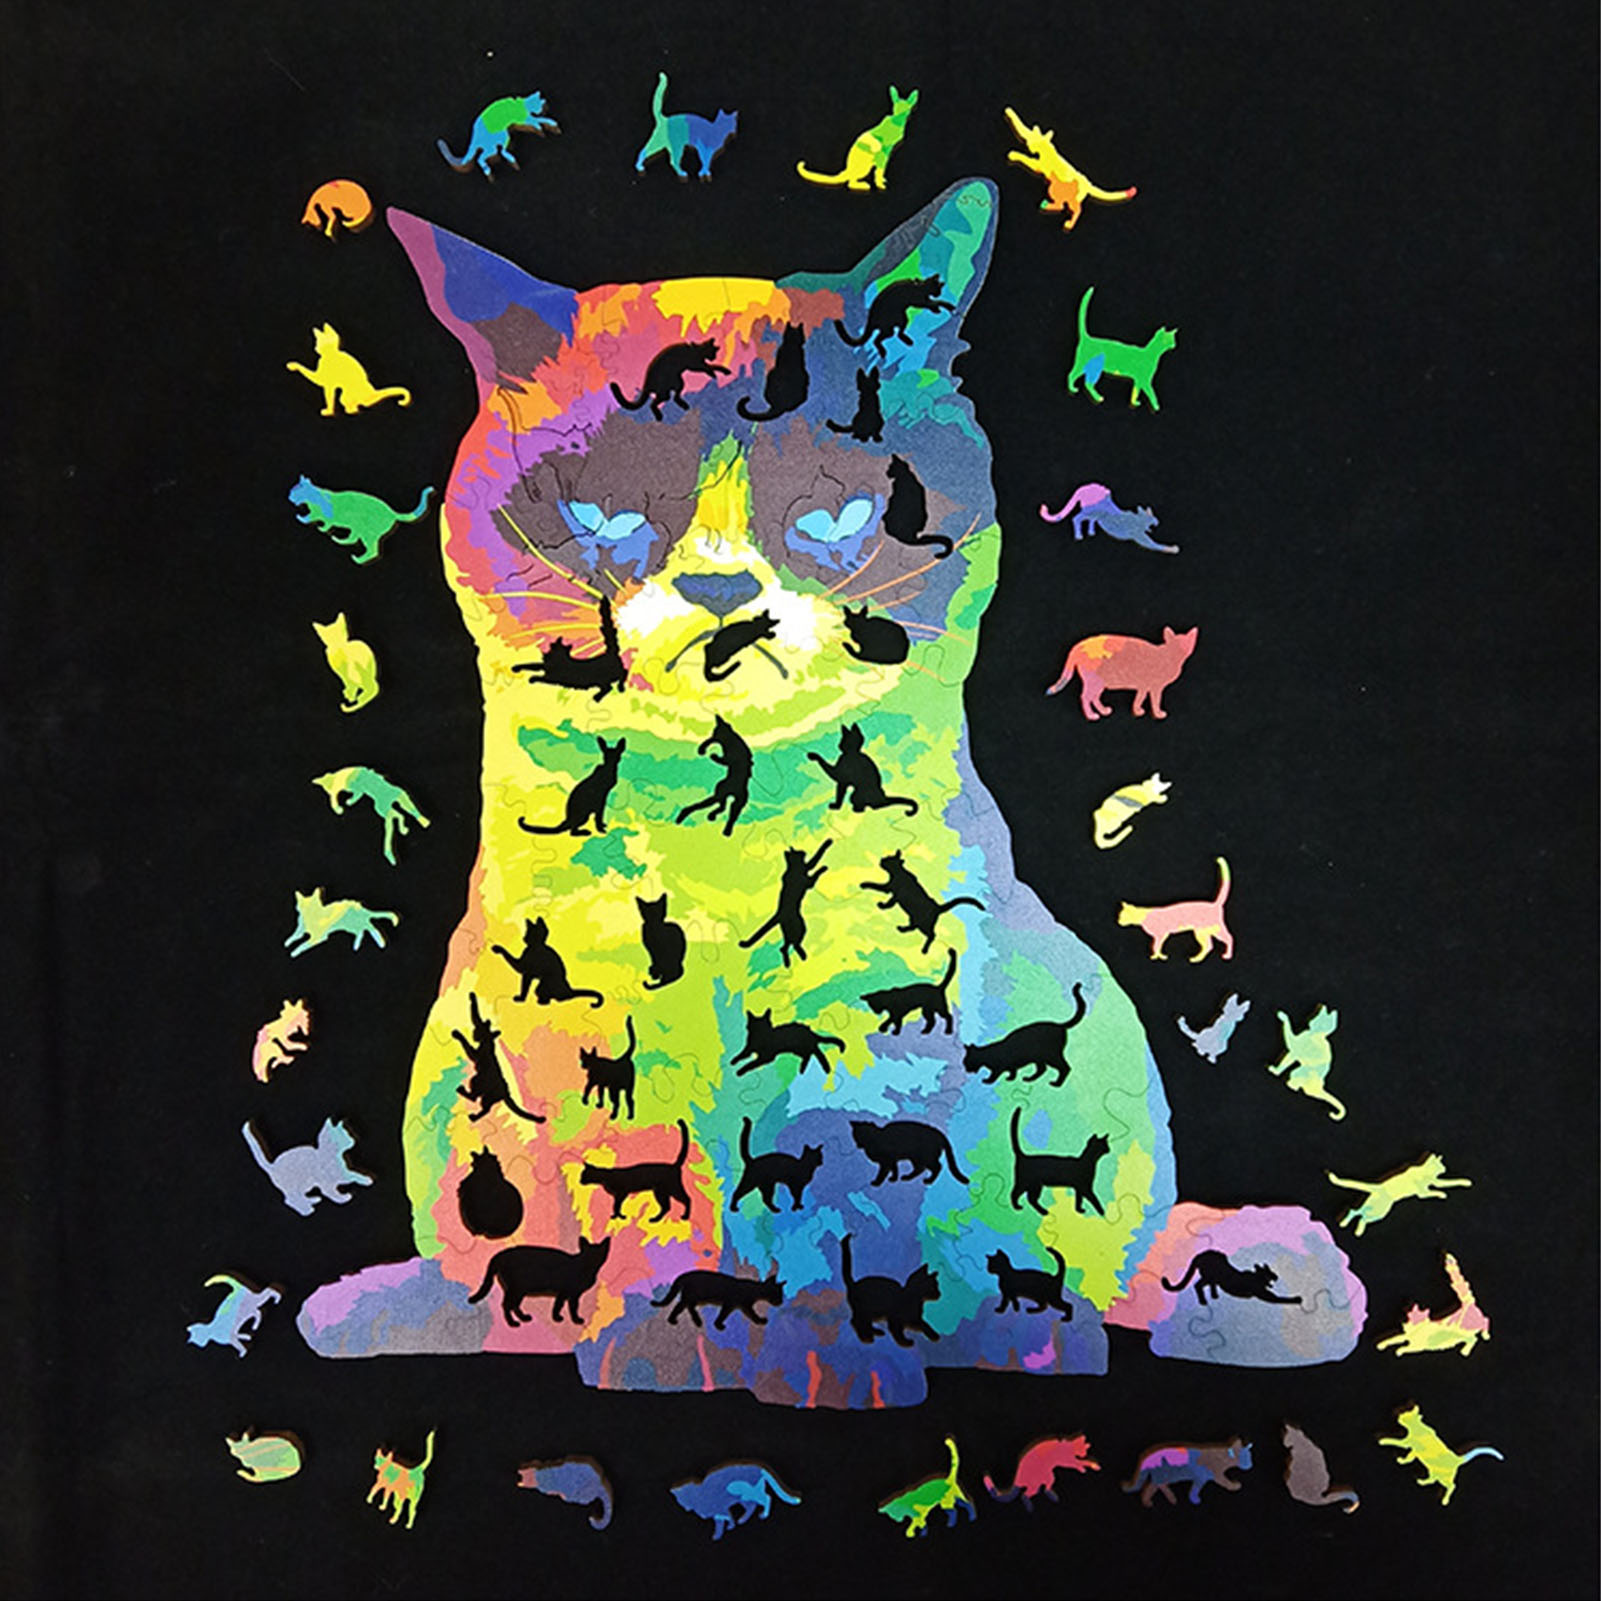 Wooden Jigsaw Puzzle Cat Unique Animal Pieces Gifts For Kids Adults Toy Game Toy